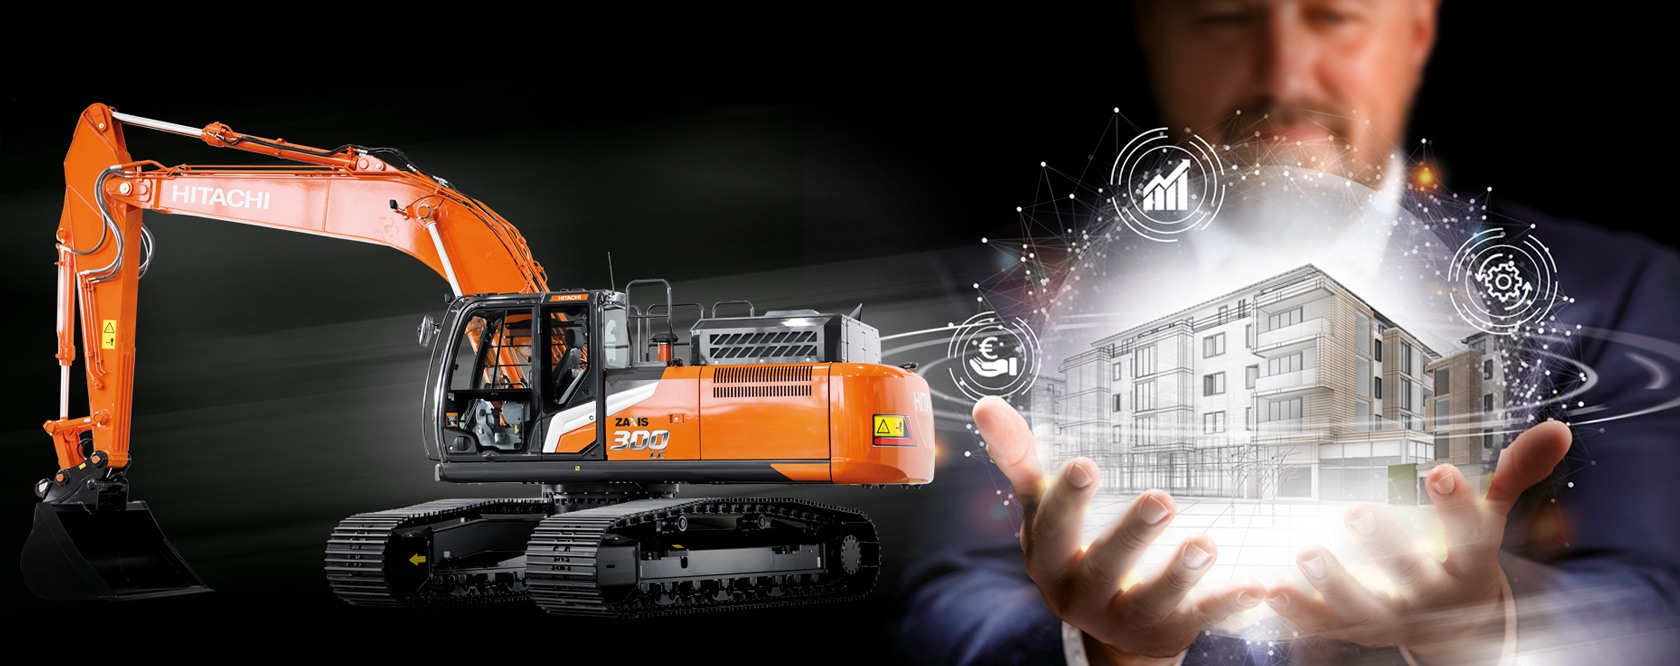 Hitachi Zaxis-7 You're in control